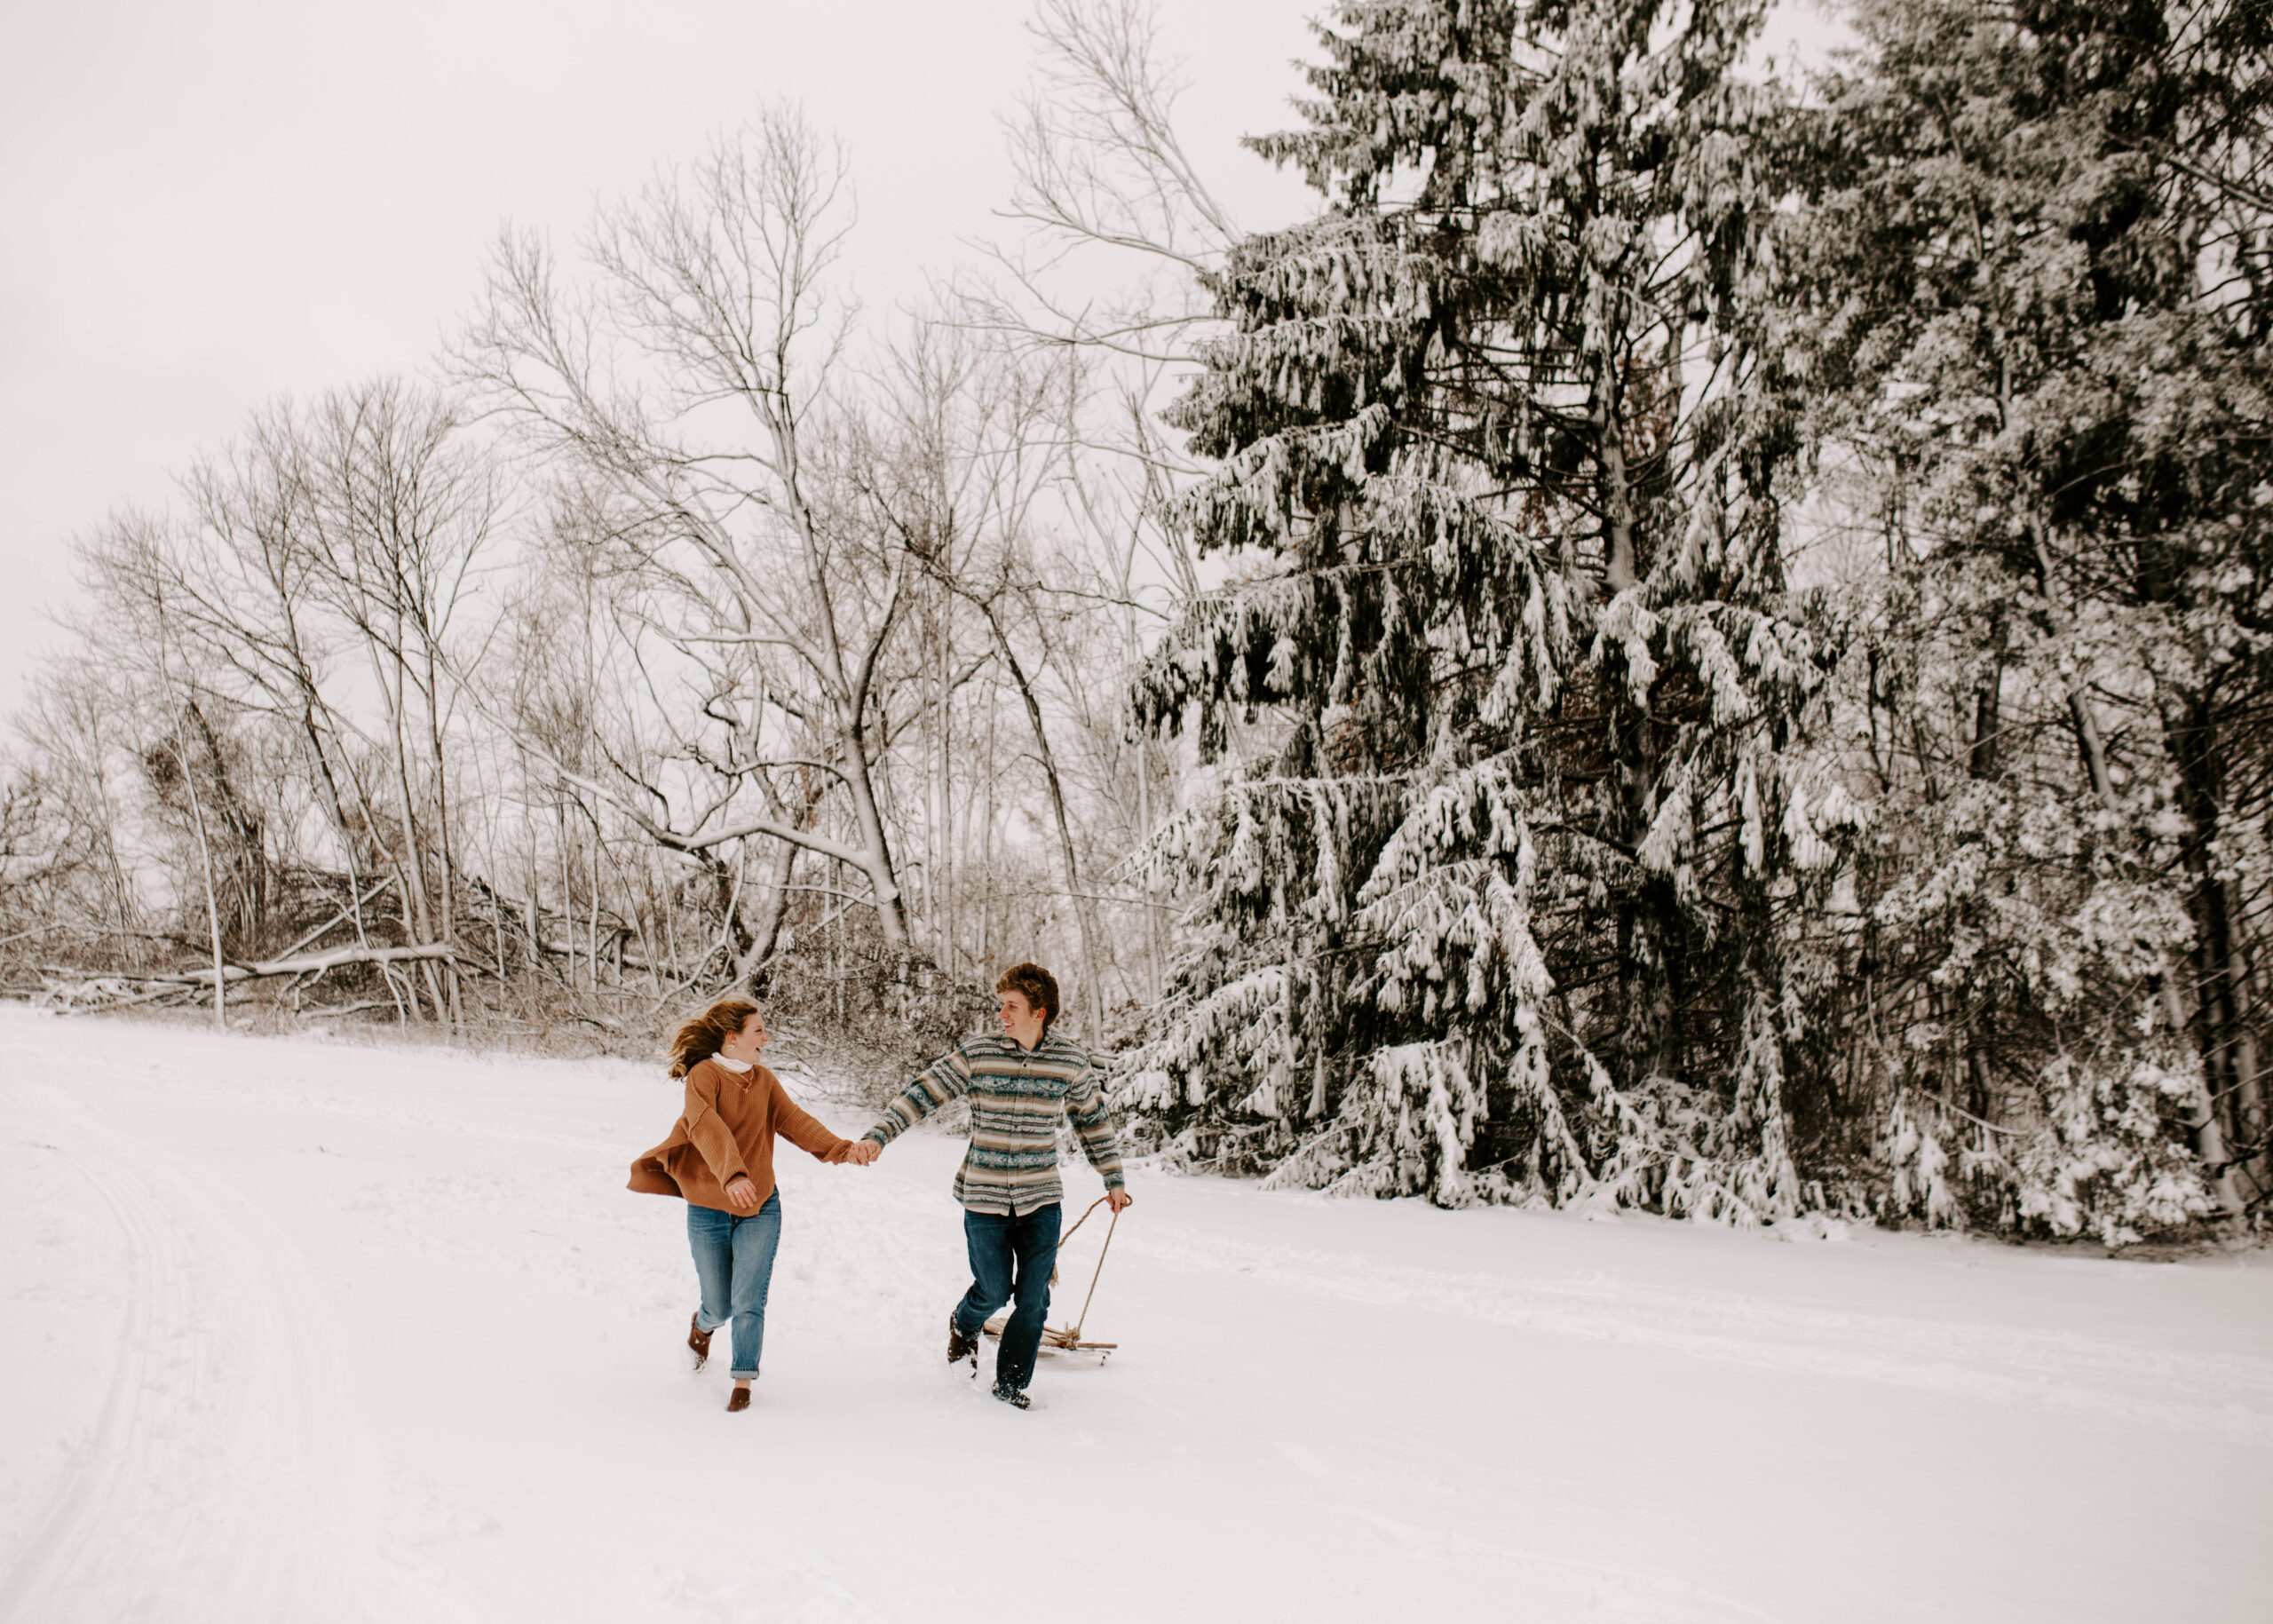 Iowa Winter Snowy Engagement Session, Couple runs through the snow with a sled